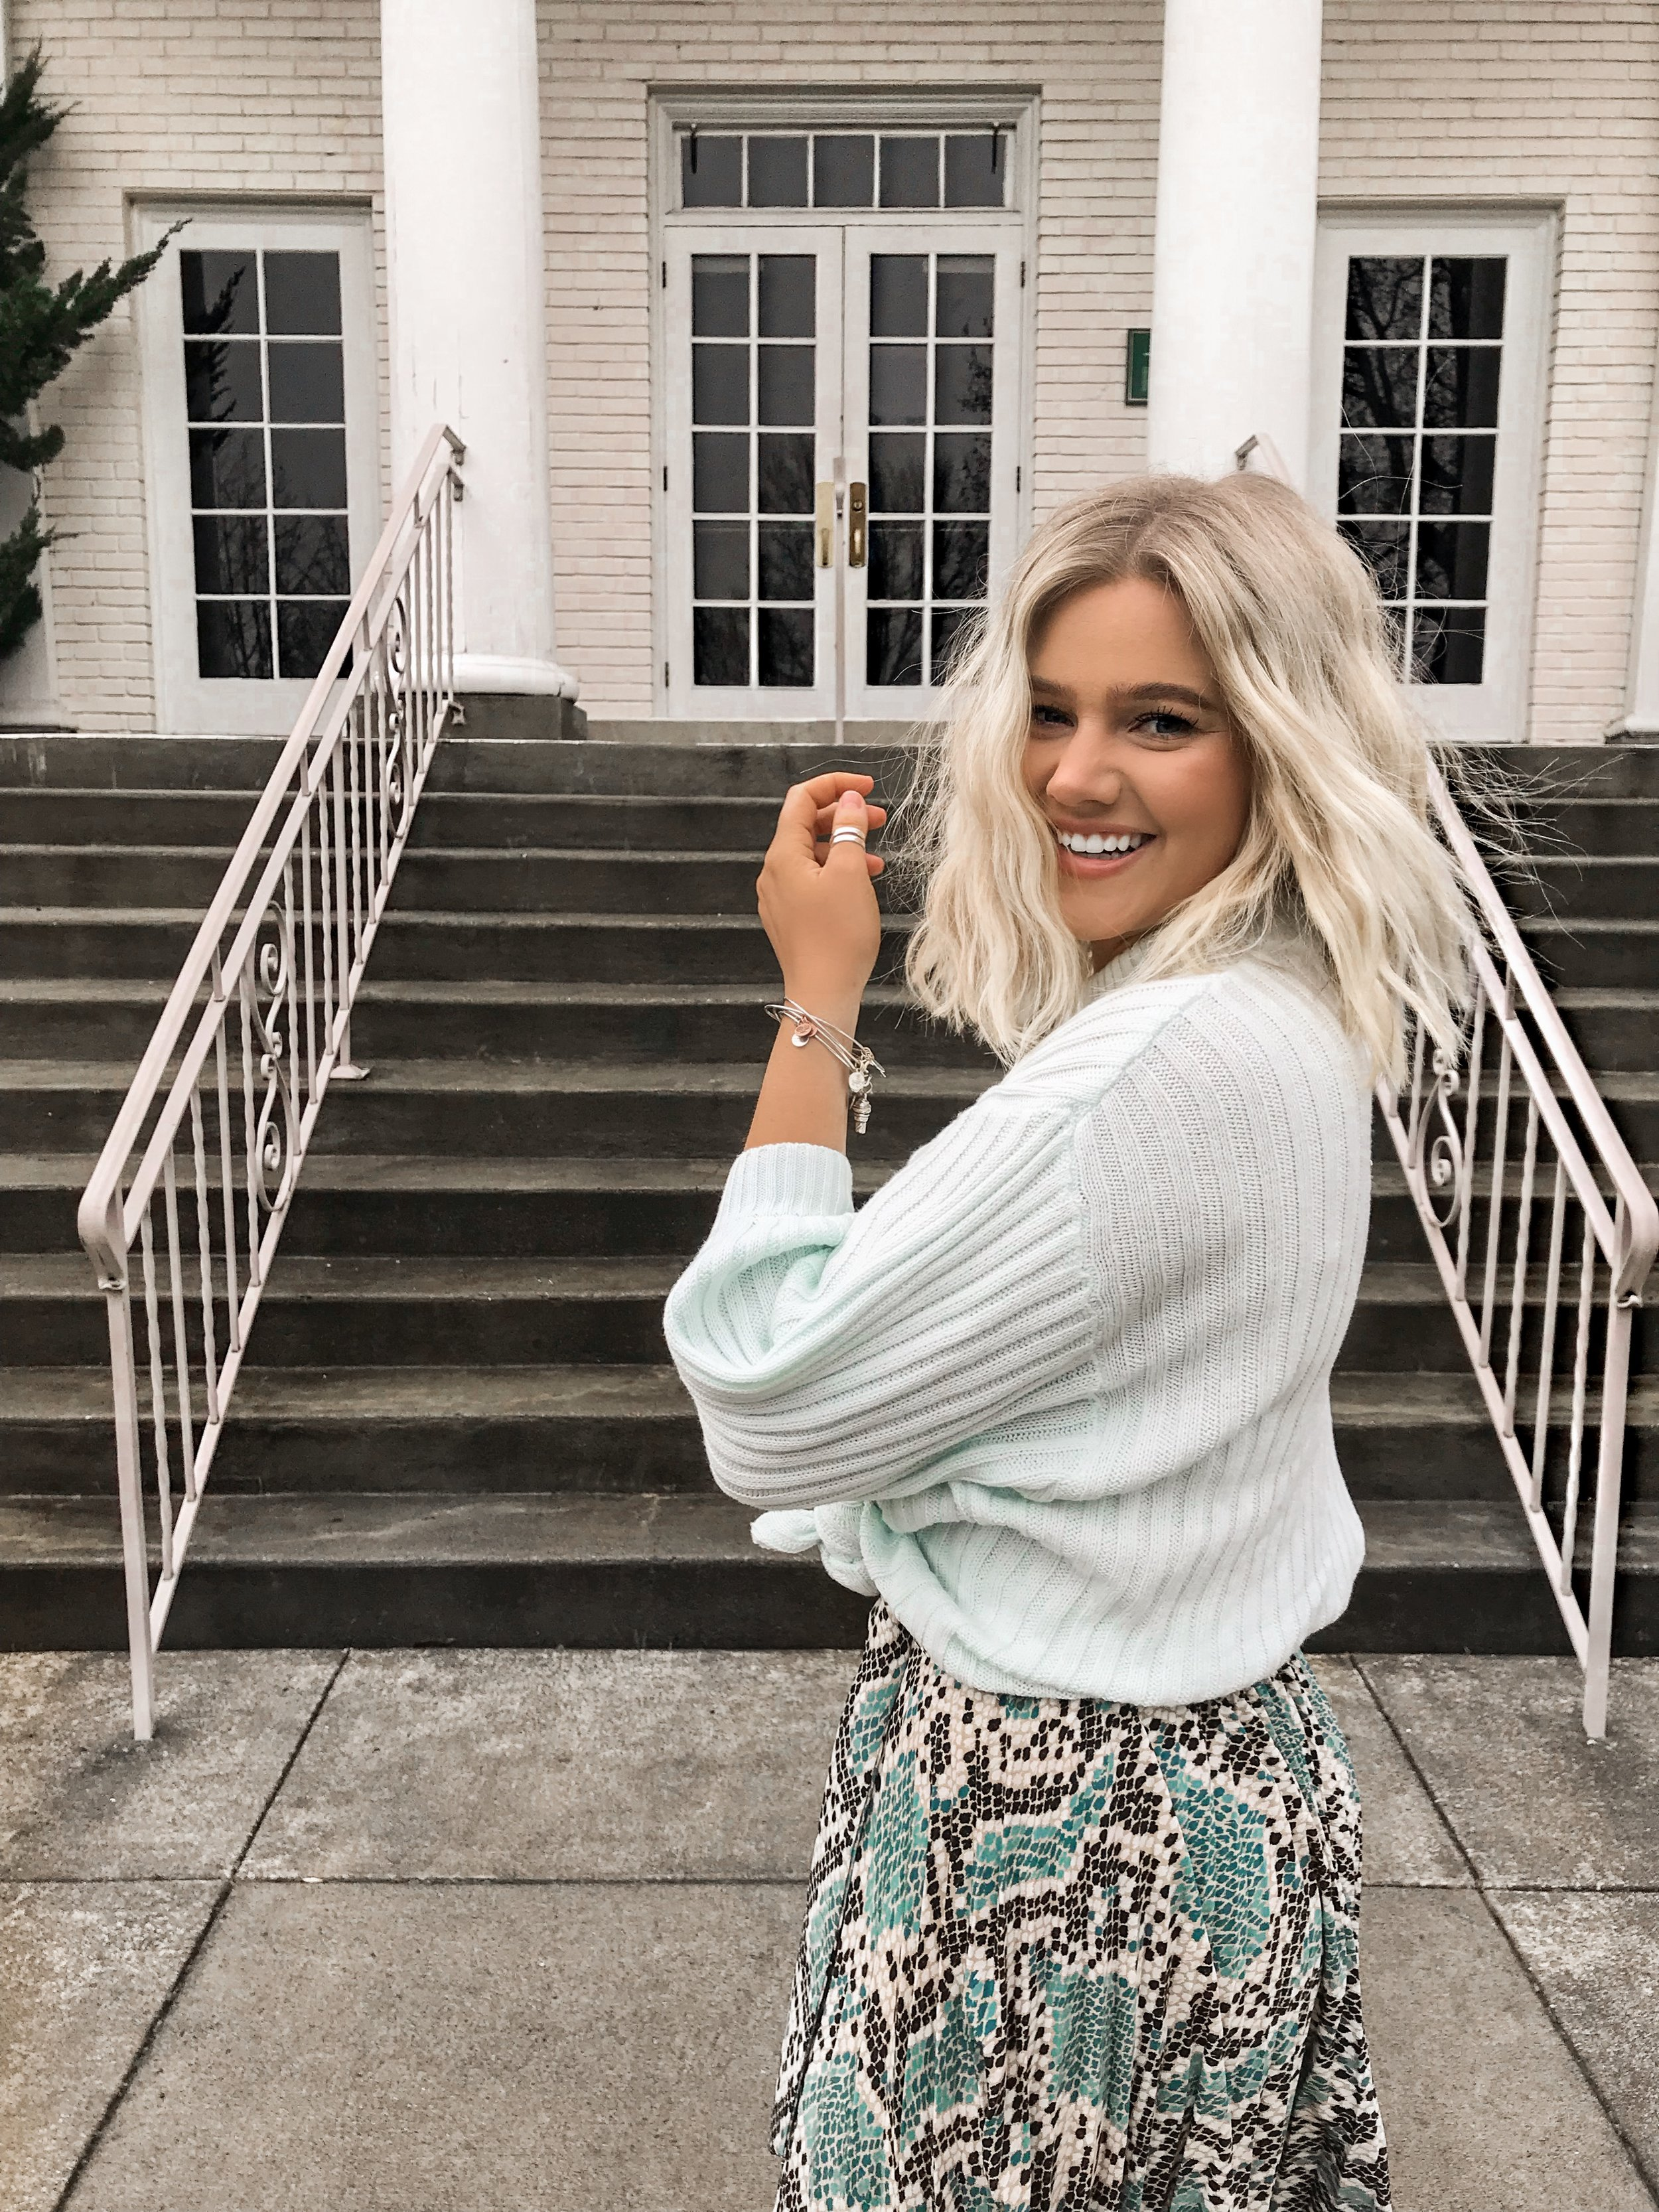 Bre Sheppard : Outfit Inspo : Spring Style : Topshop : Snakeskin : Blues.JPG